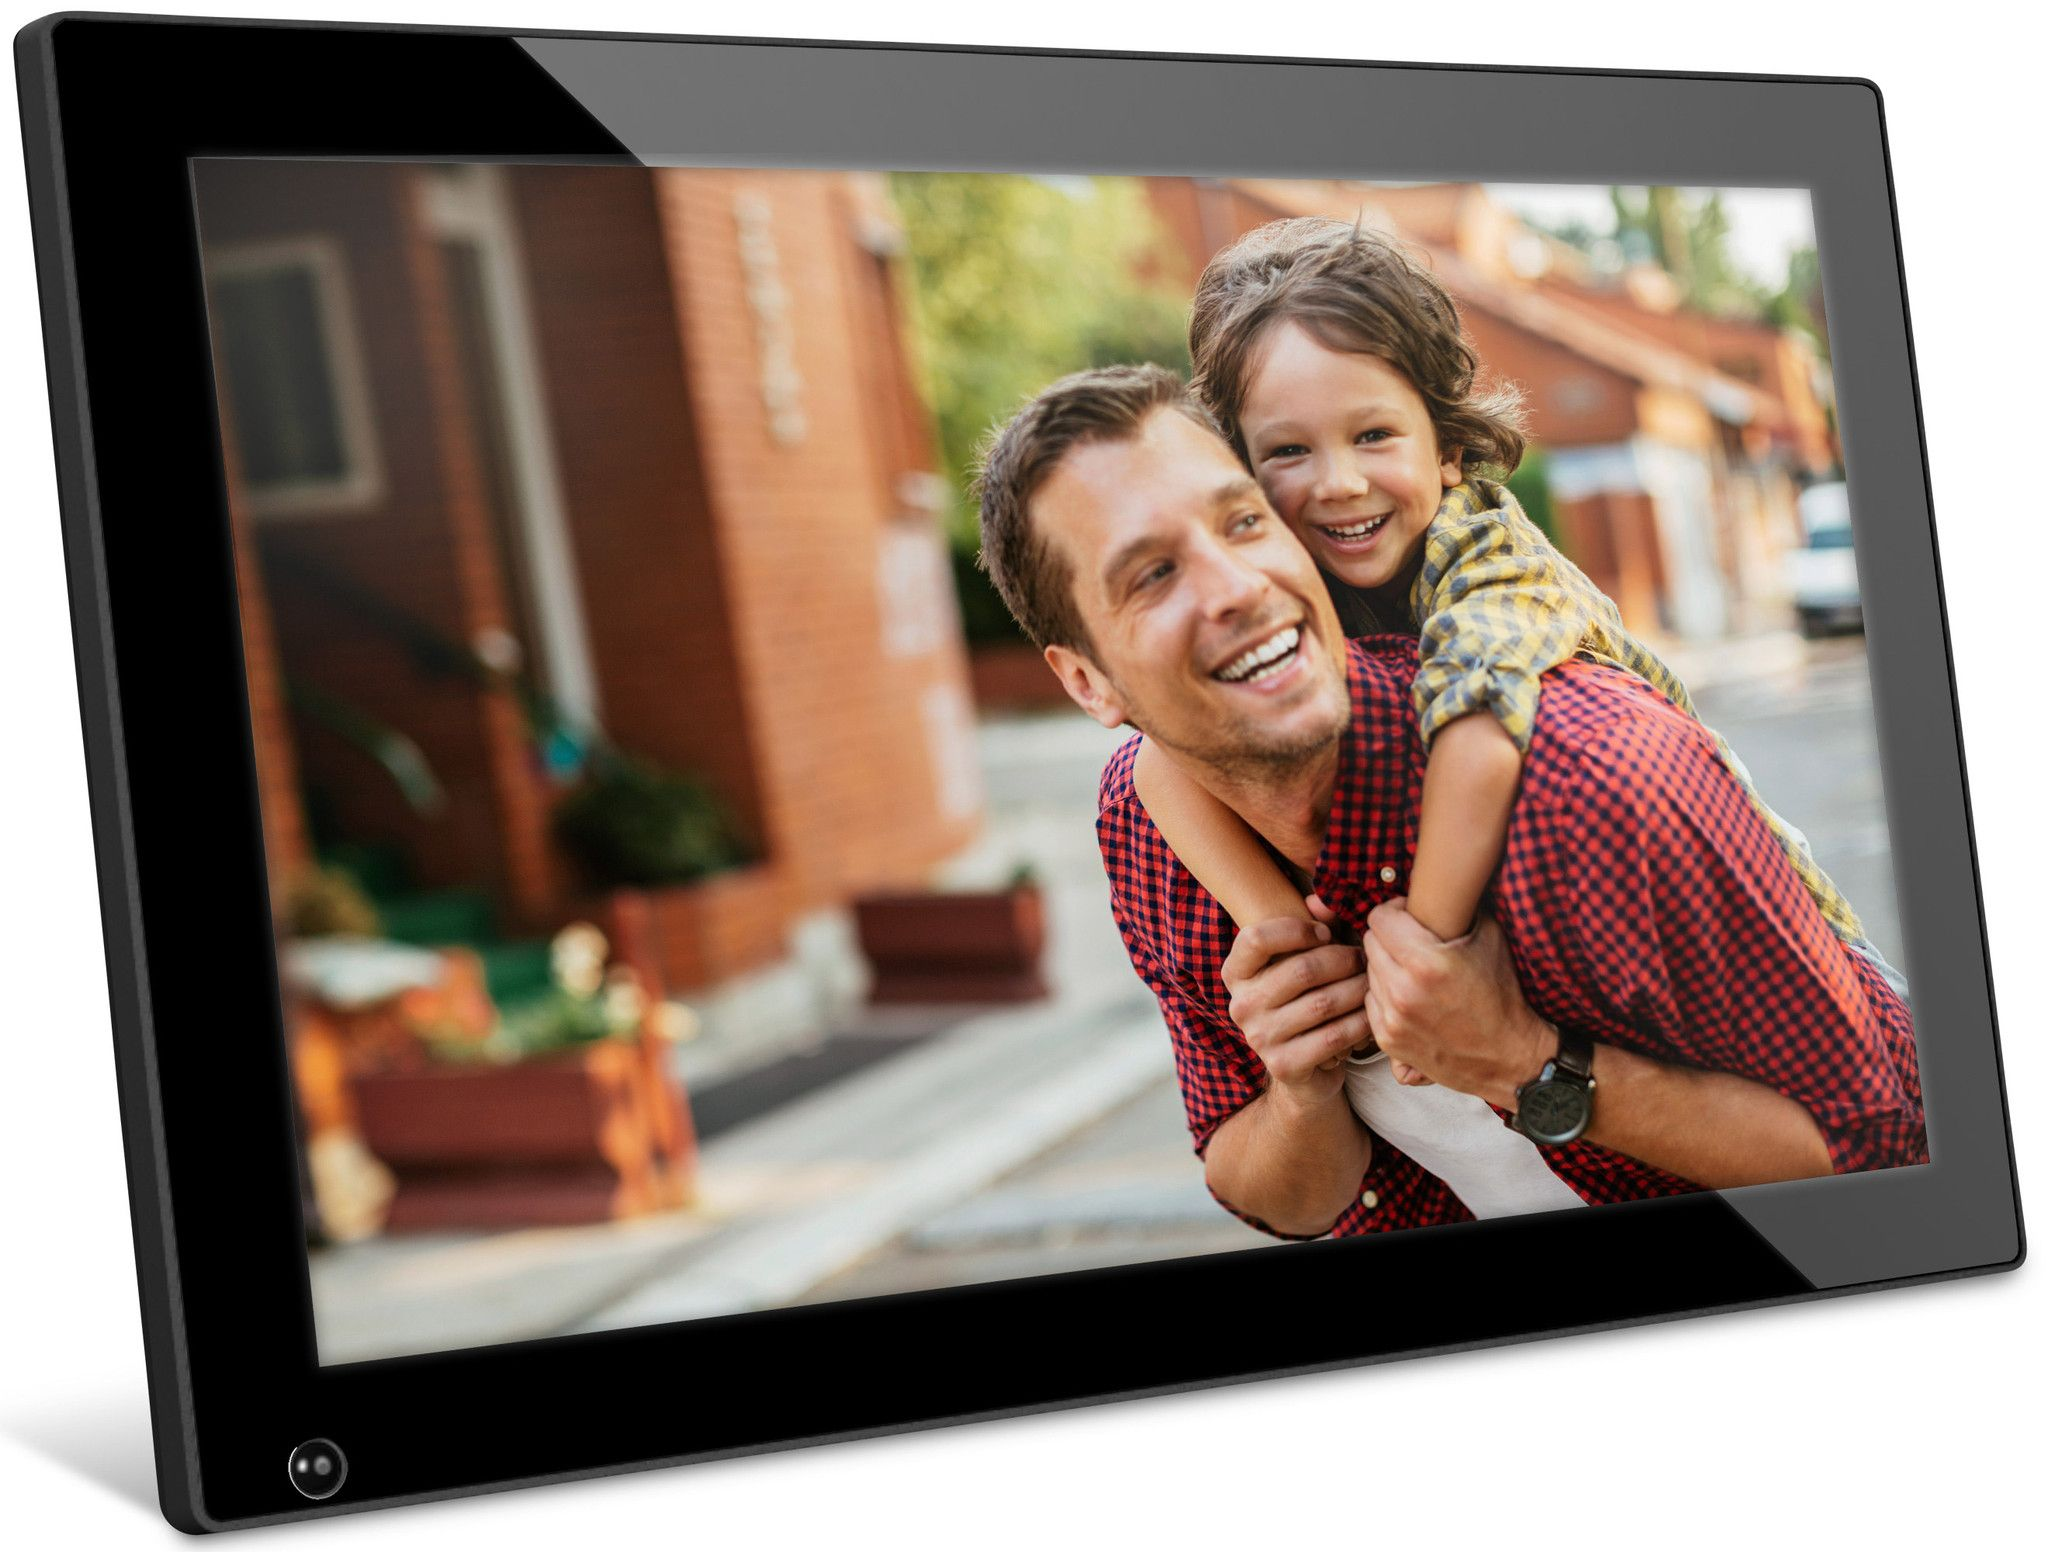 Nix advance digital frame 18 inch digital photo frame and cameras nix is an 18 inch digital photo frame with motion sensor technology it is a large digital picture frame with standard resolution display jeuxipadfo Gallery